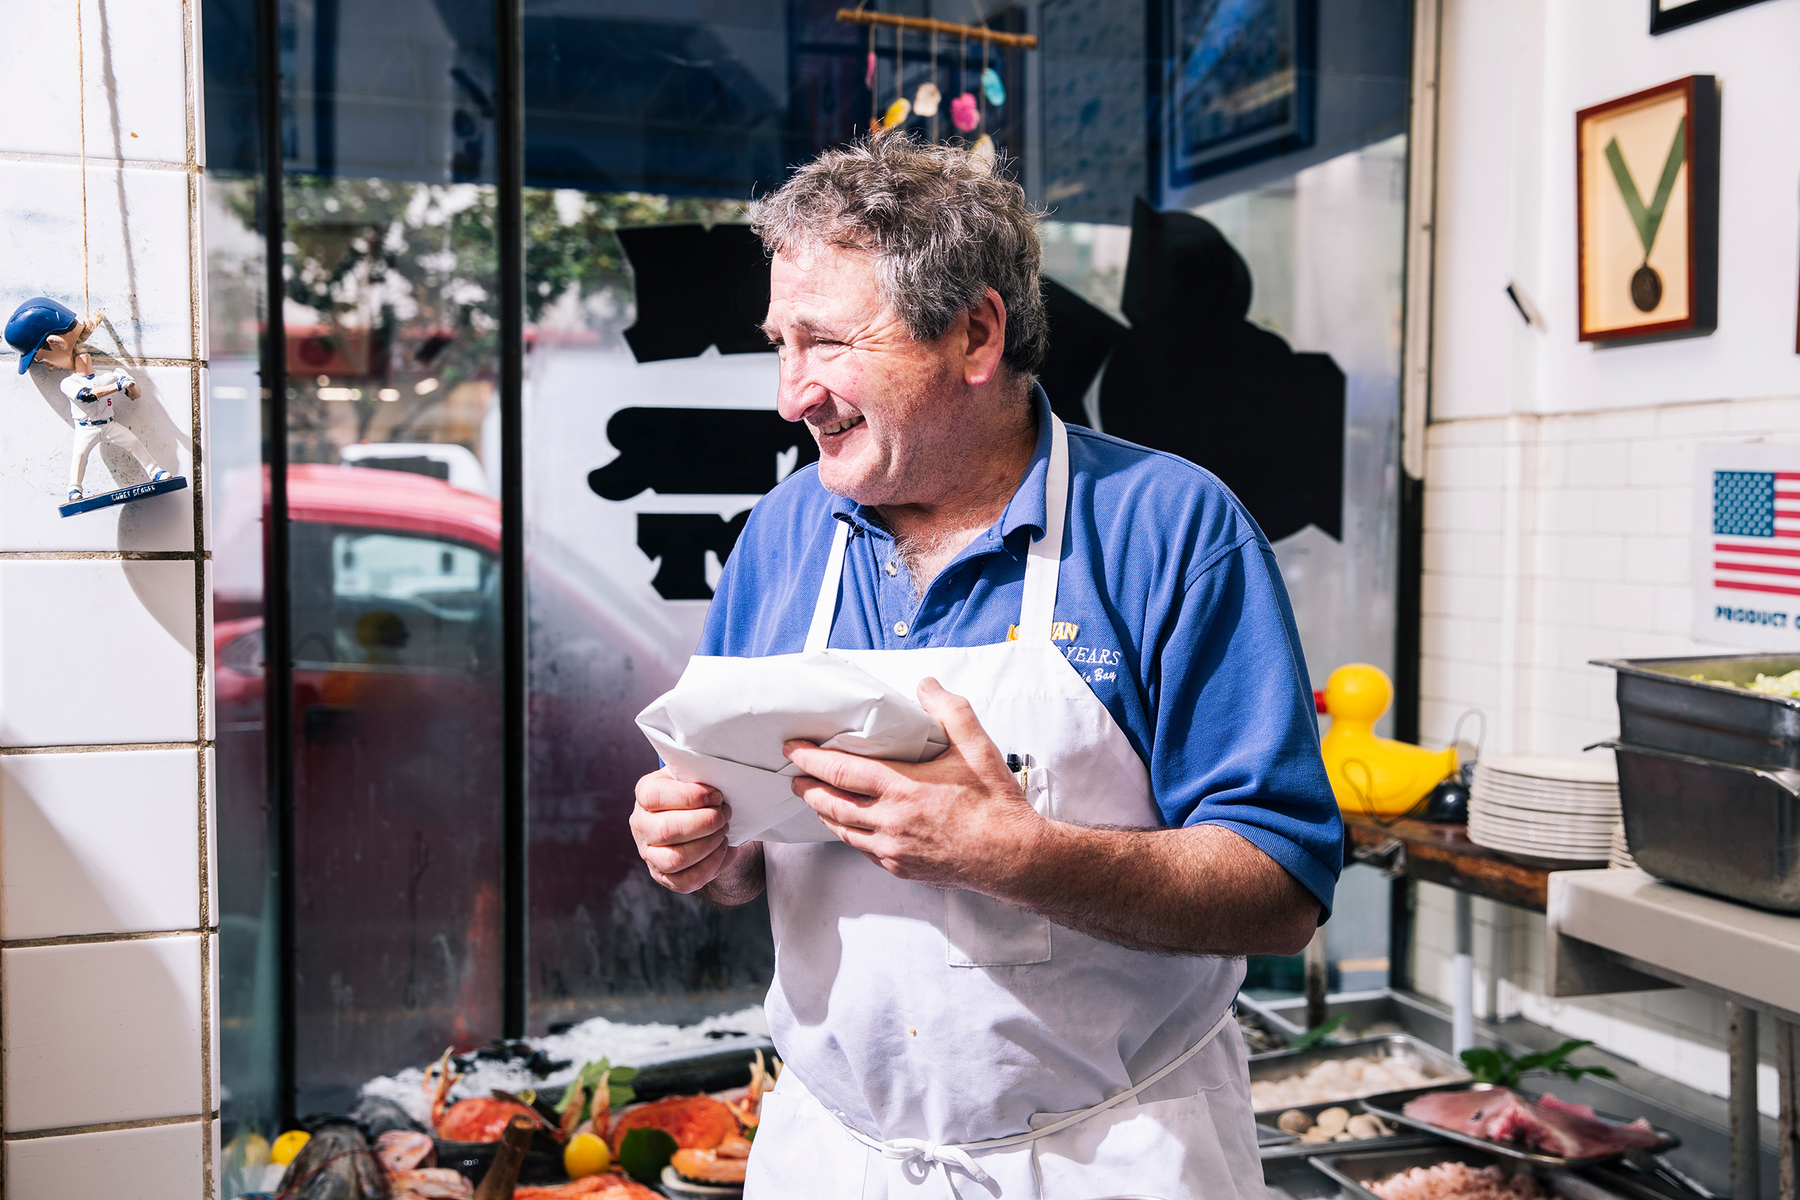 Tom Sancimino, center, smiles as he speaks with a long-time customer at Swan Oyster Depot in San Francisco, Calif. on Tuesday, April 2, 2019.